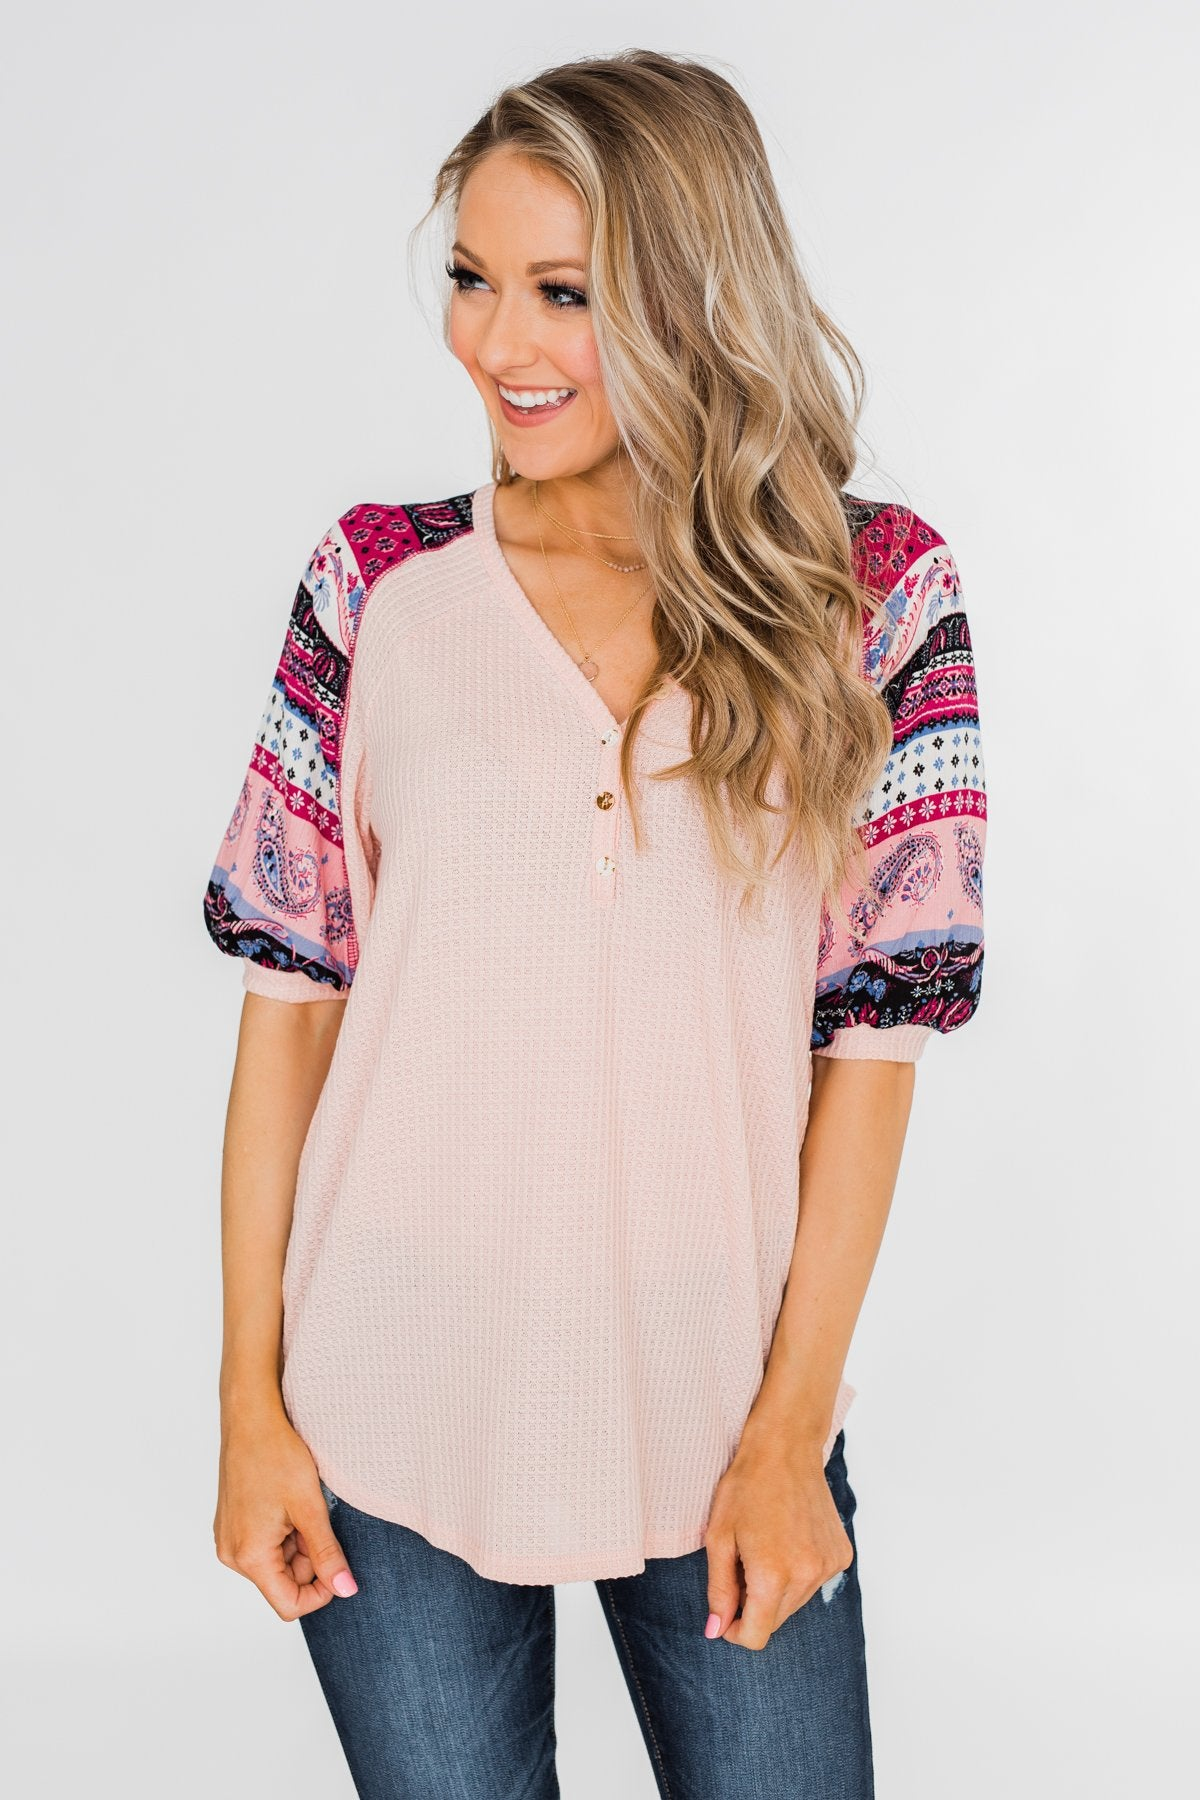 Uniquely You Button Detail Top- Blush